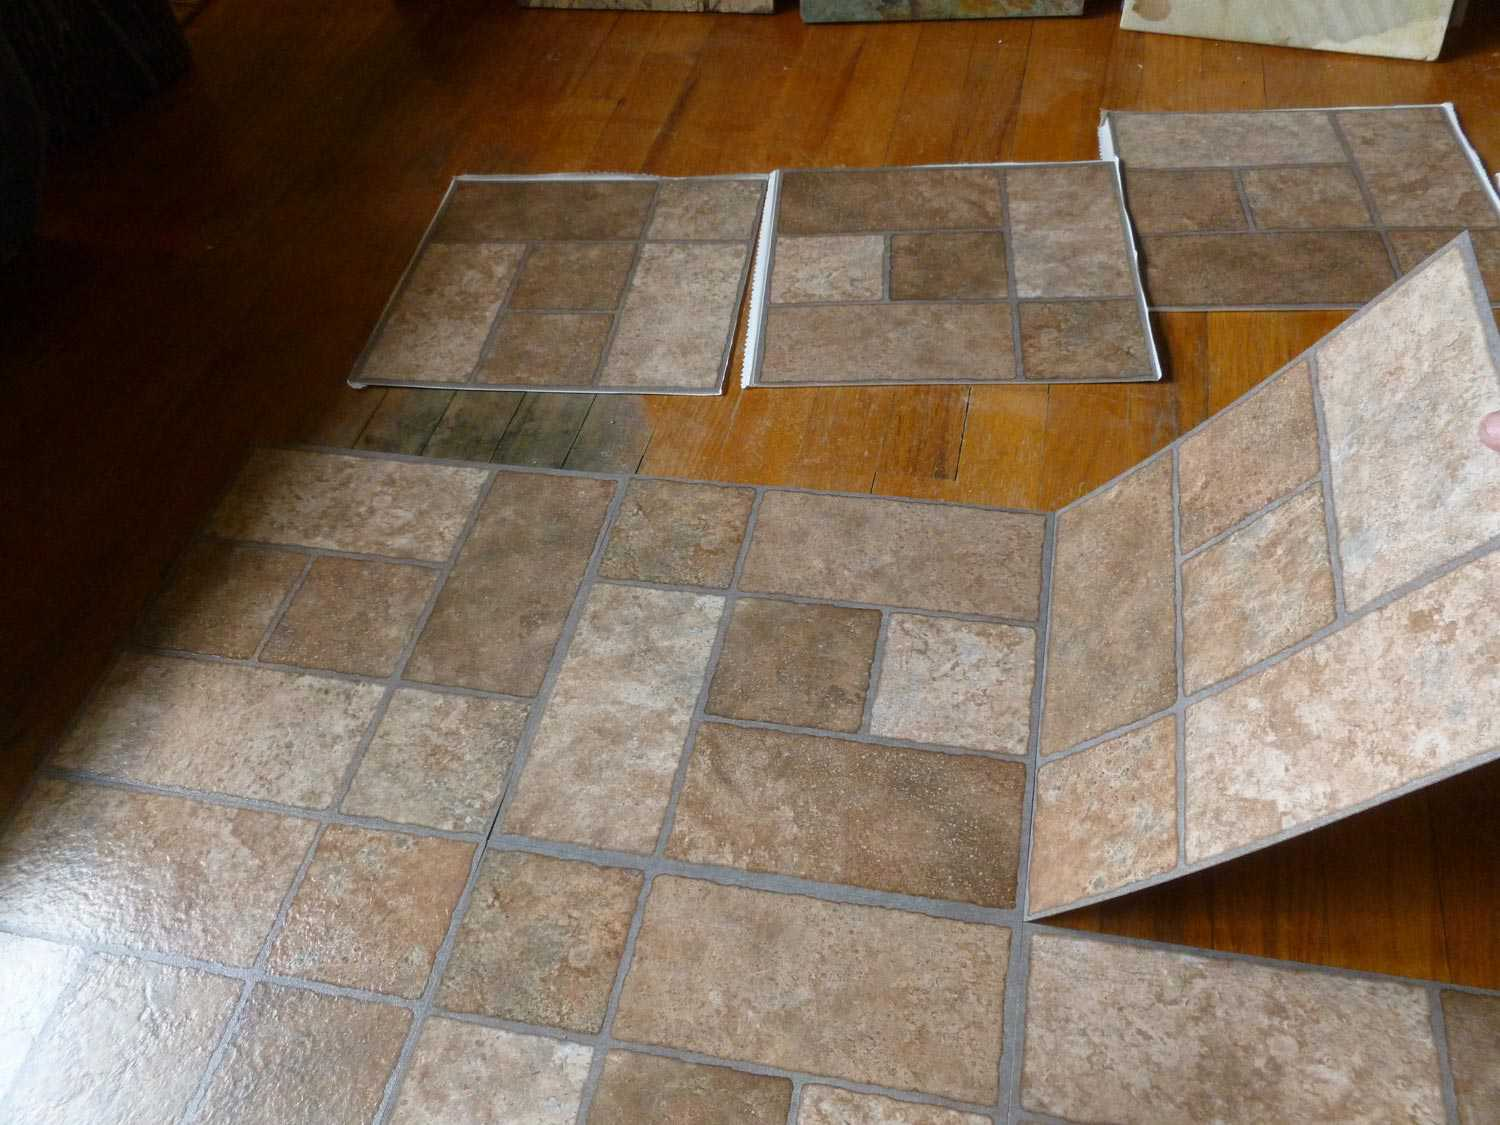 Do not choose the wrong tile, this is the type and advantages